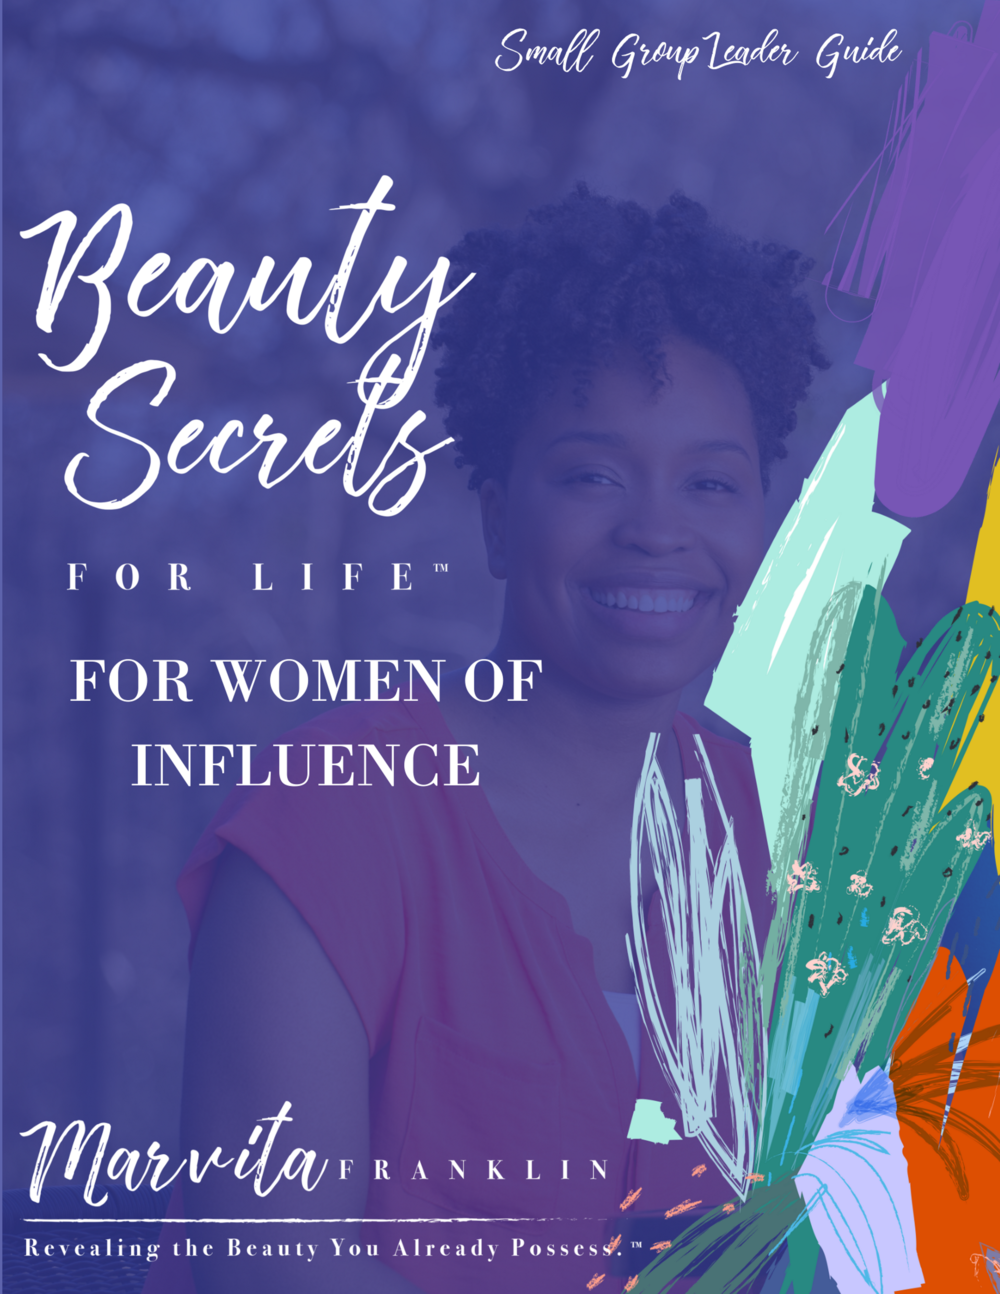 COMING 2019! - Beauty Secrets for Life for Women of Influence™ will highlight the practical application of God's Word to our everyday leadership encounters. These nine beauty secrets will strengthen our identity as women called to lead in every sector of life.